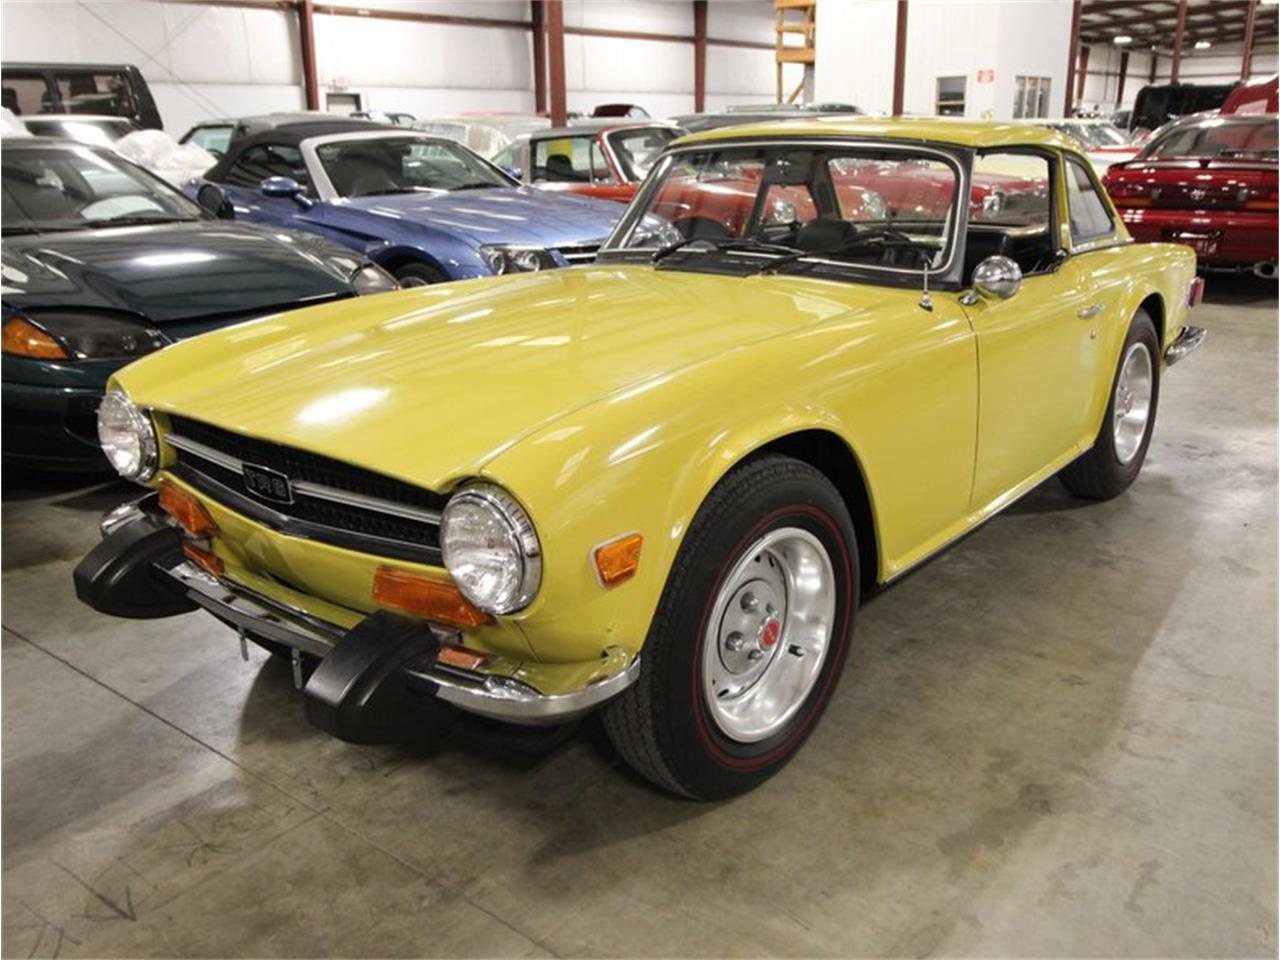 1974 Triumph TR6 (CC-1389098) for sale in Christiansburg, Virginia